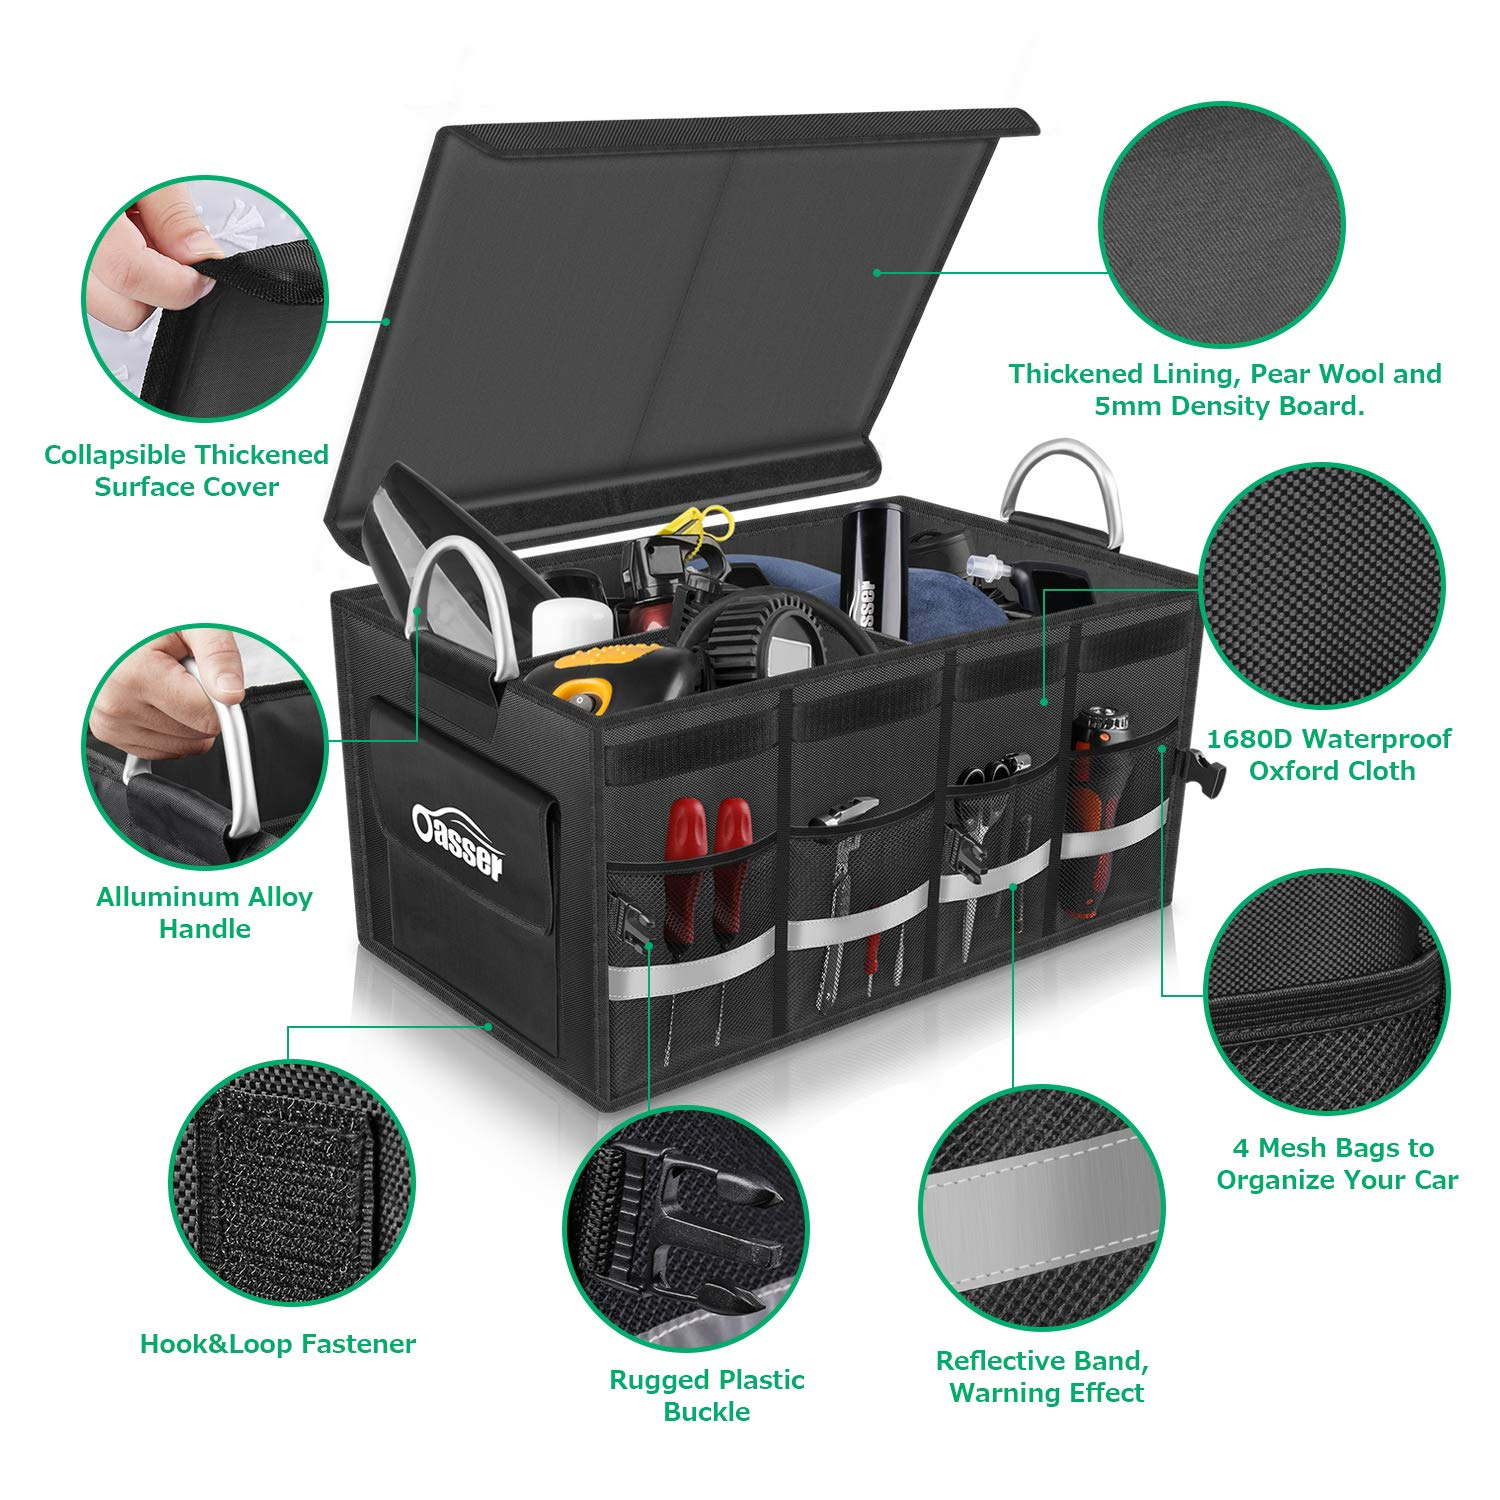 Oasser Car Boot Organiser Trunk Organiser Collapsible Waterproof Durable Multi Compartments with Sturdy Base Hook/&Loop Fastener 1680D for Car Truck SUV /& Indoor E3